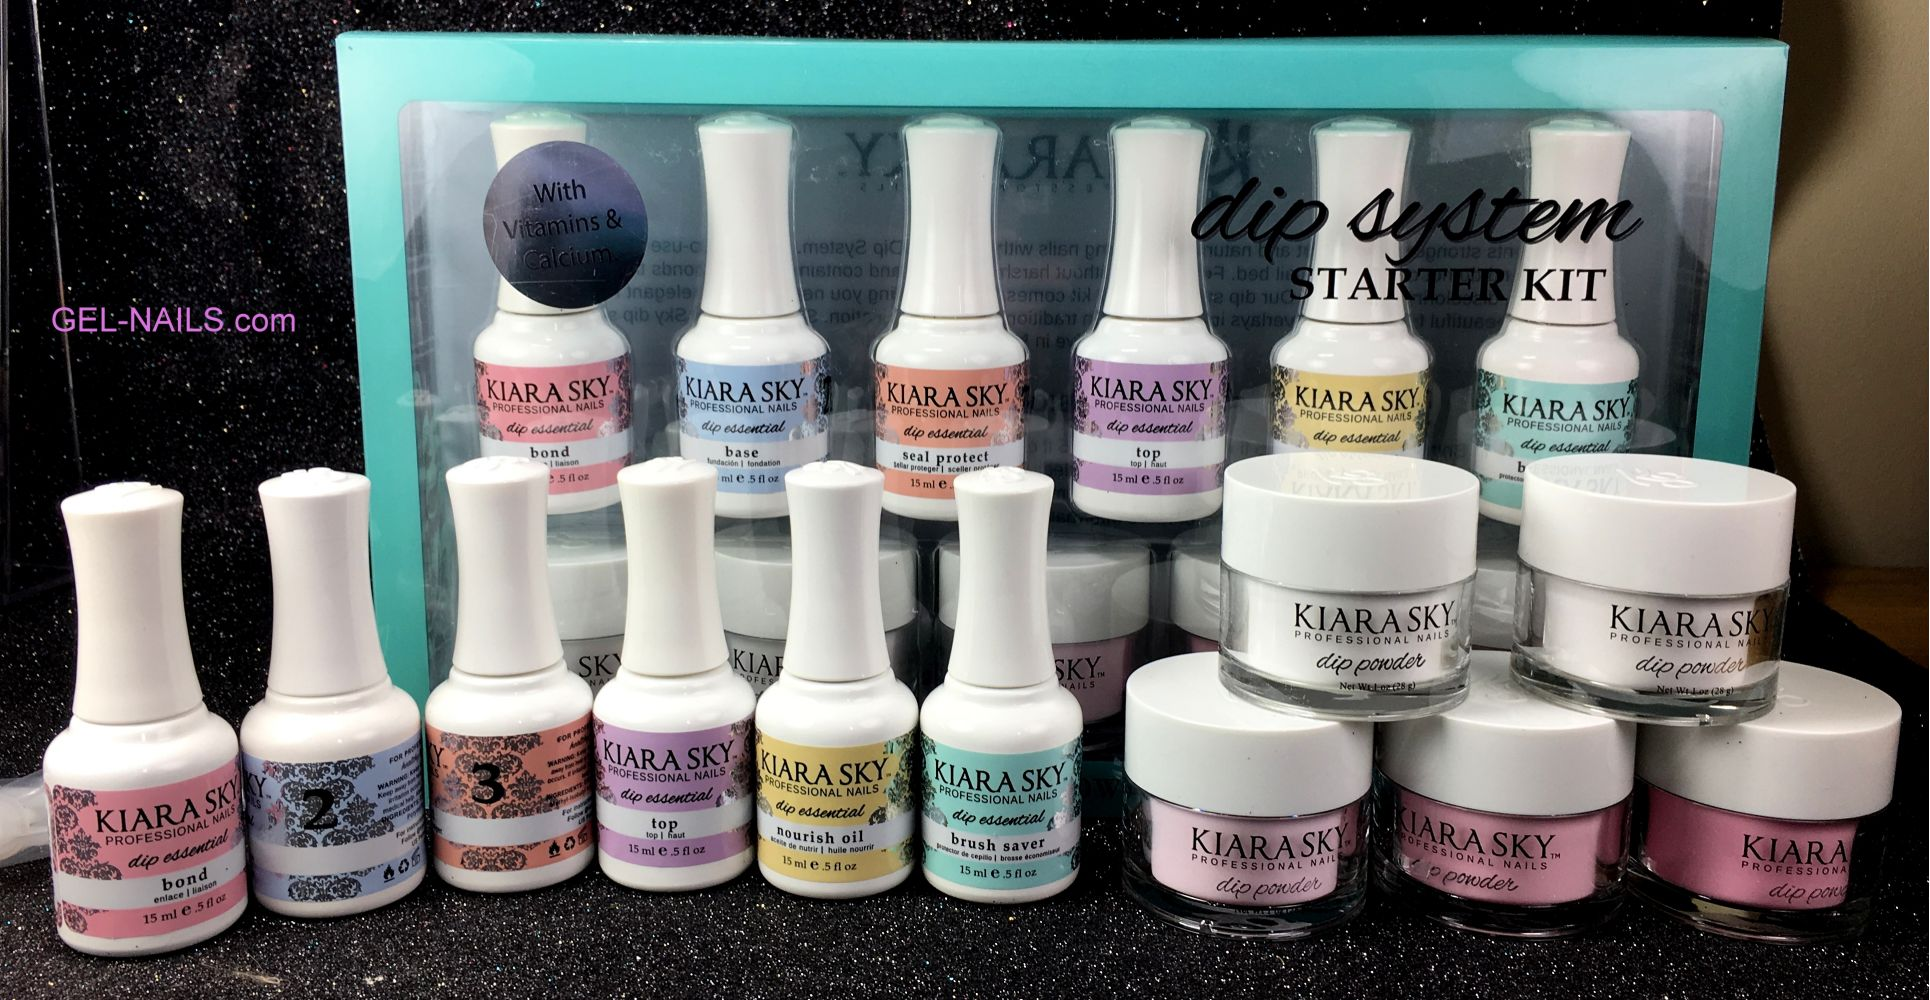 Dip System Starter Kit Kiara Sky with Vitamins & Calcium I gel-nails.com